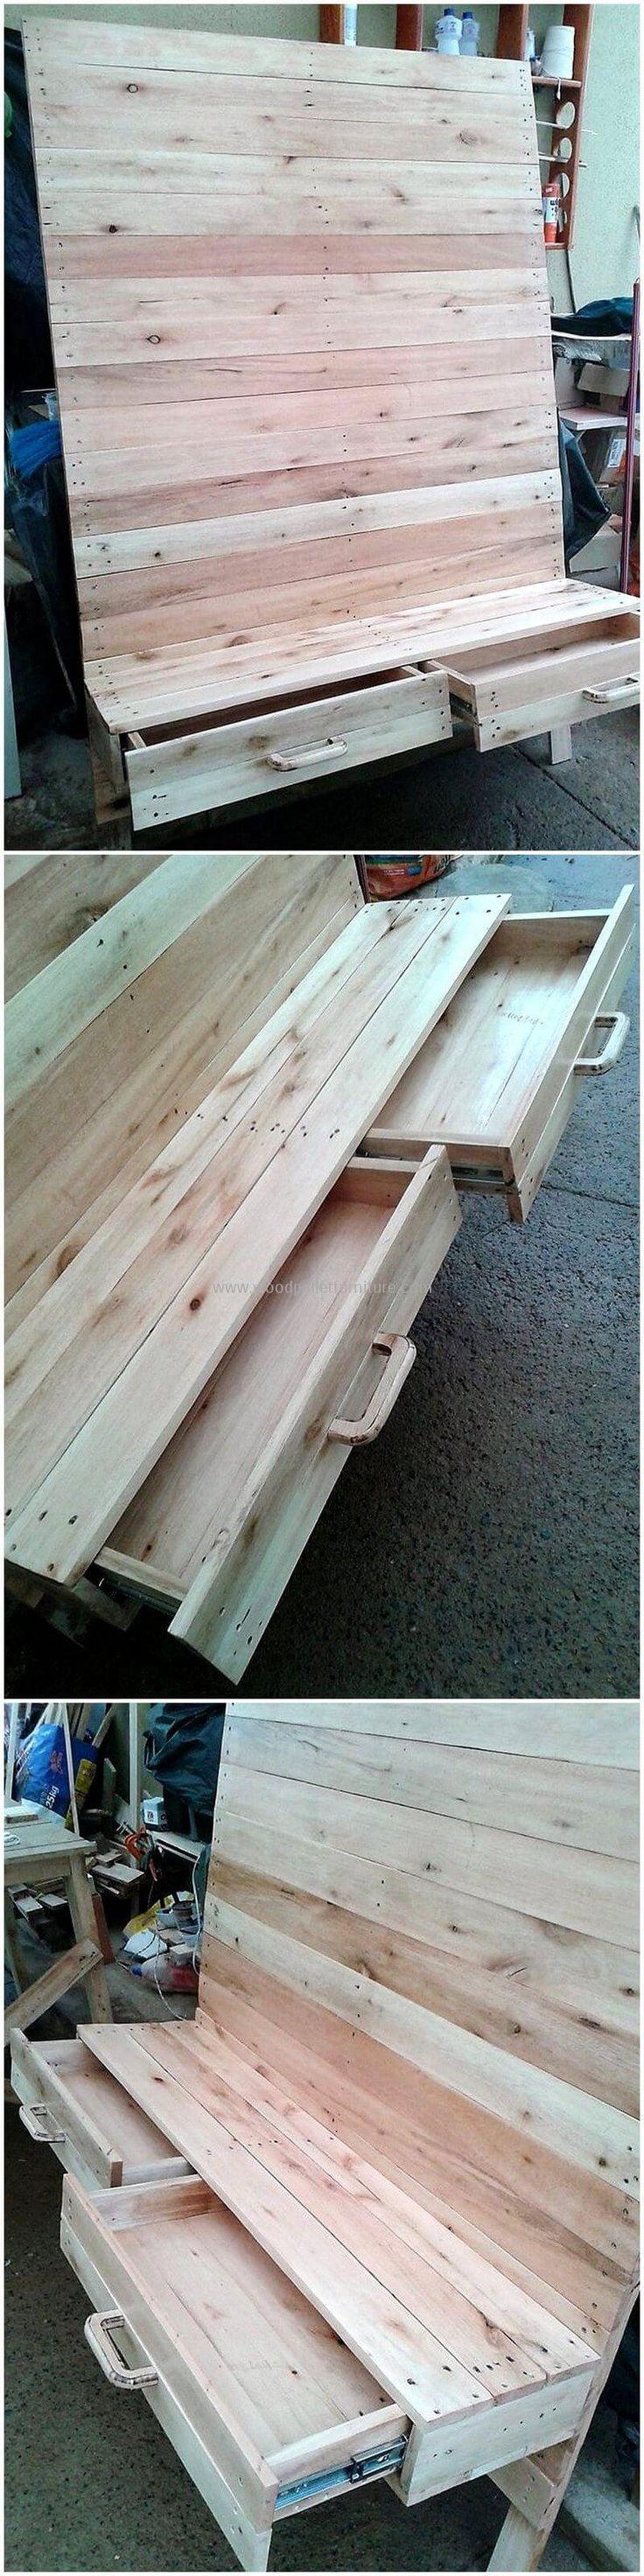 This wooden pallet LED stand idea has all the things you need in your room. You can attach your large-size LED in the large wooden portion. The lower drawers in this wood pallets plan will provide you best storage capacity. The original color of wood pallets is making this LED stand an ideal one.